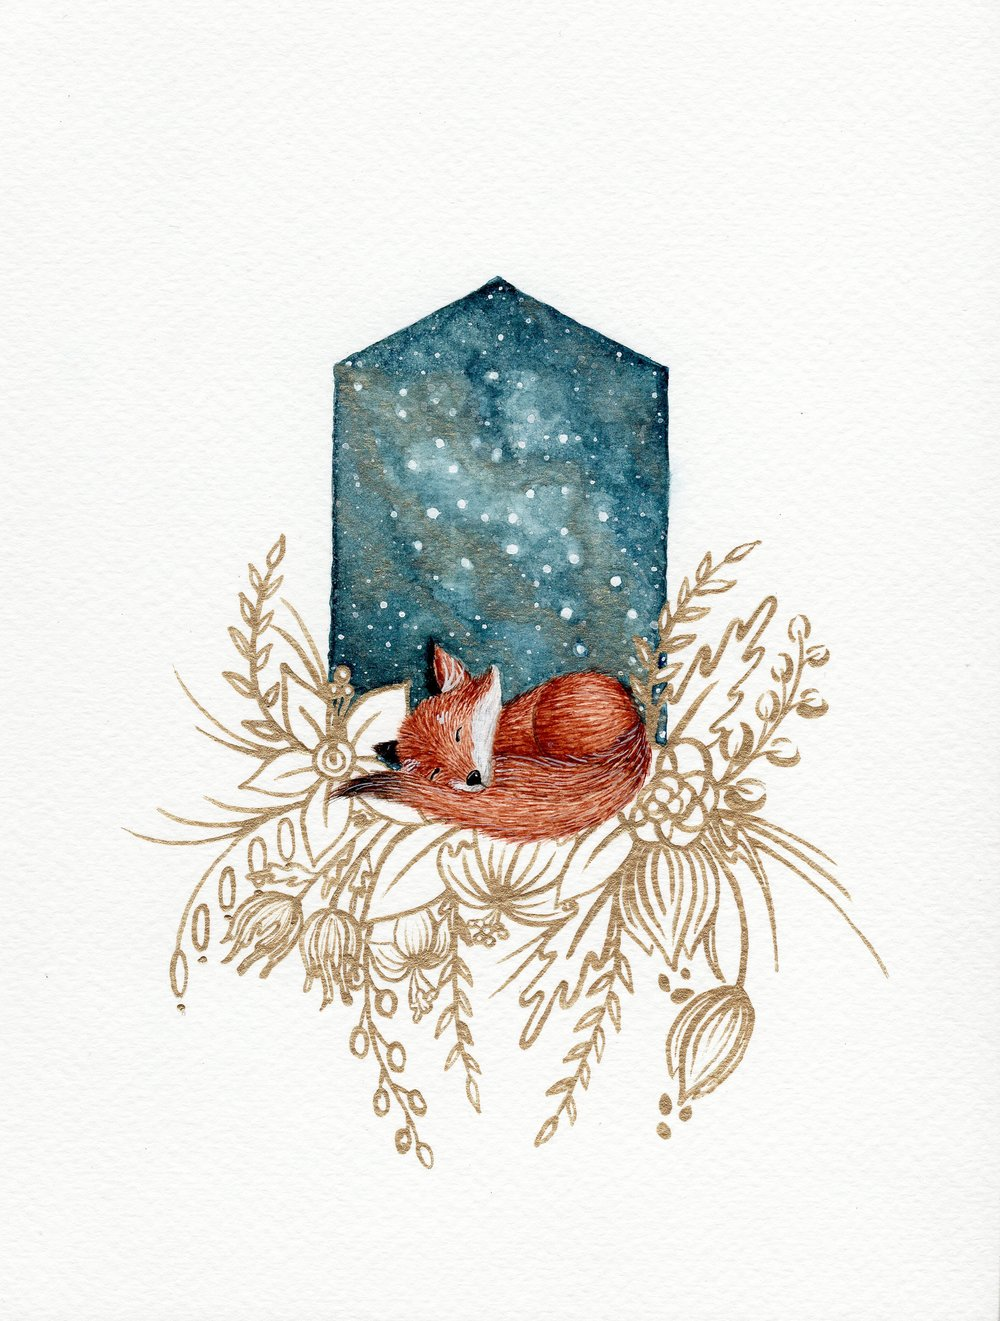 Asleep with the Stars